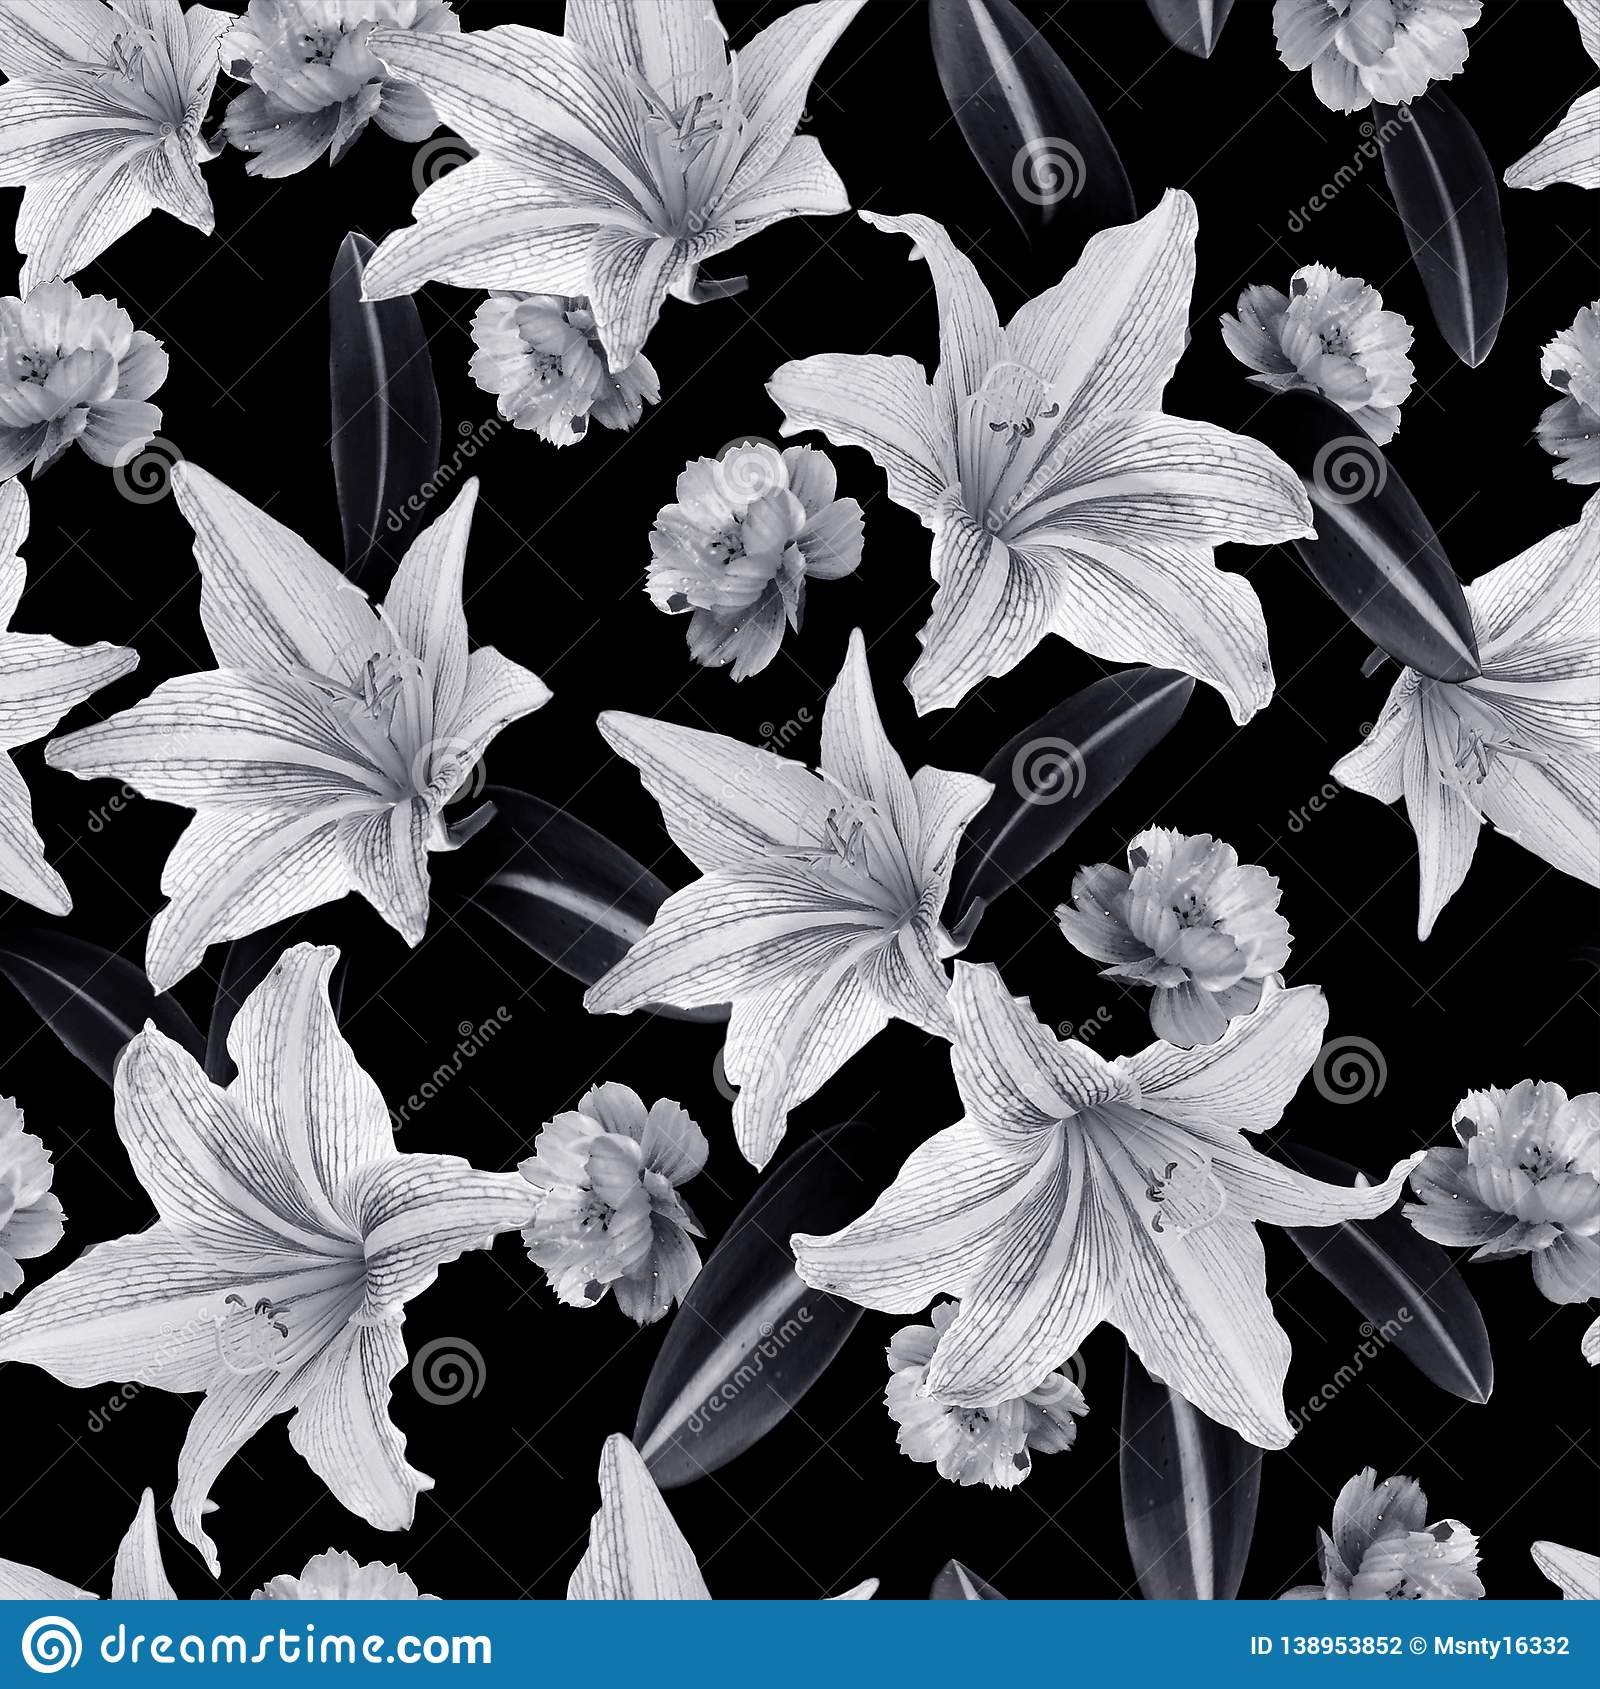 Photo monotone black and white seamless floral pattern of exotic